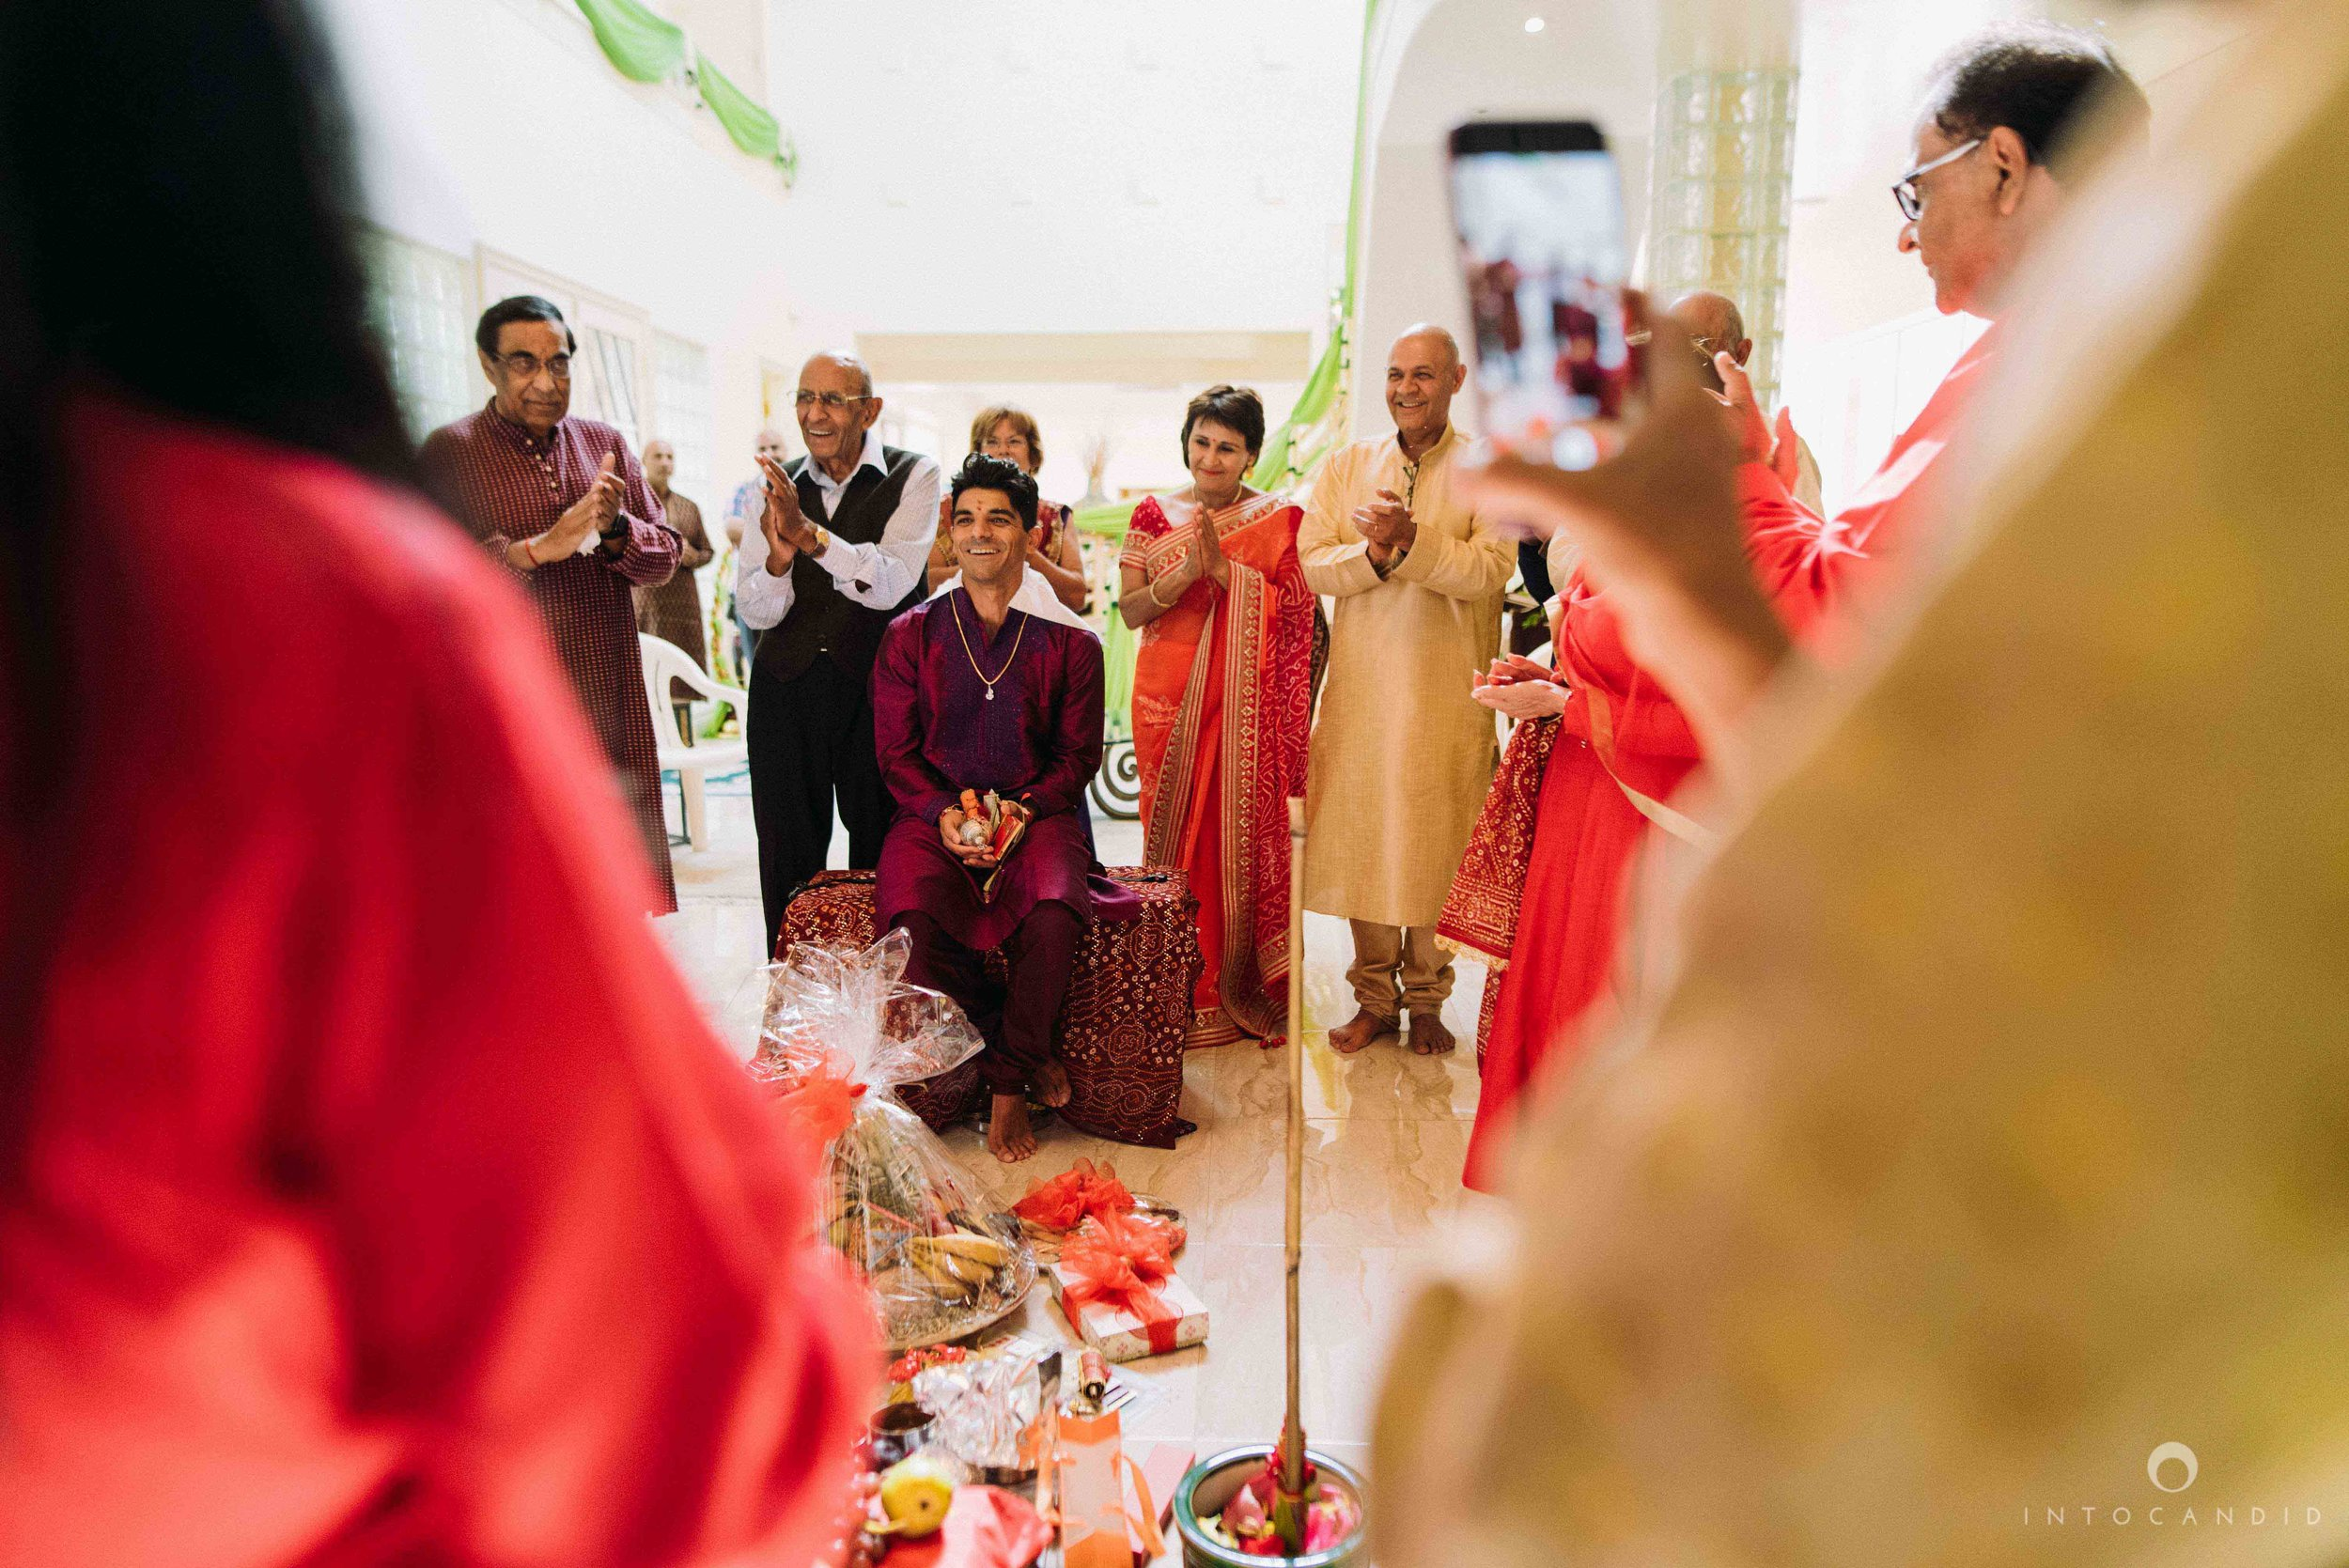 LosAngeles_Indian_Wedding_Photographer_AS_015.jpg